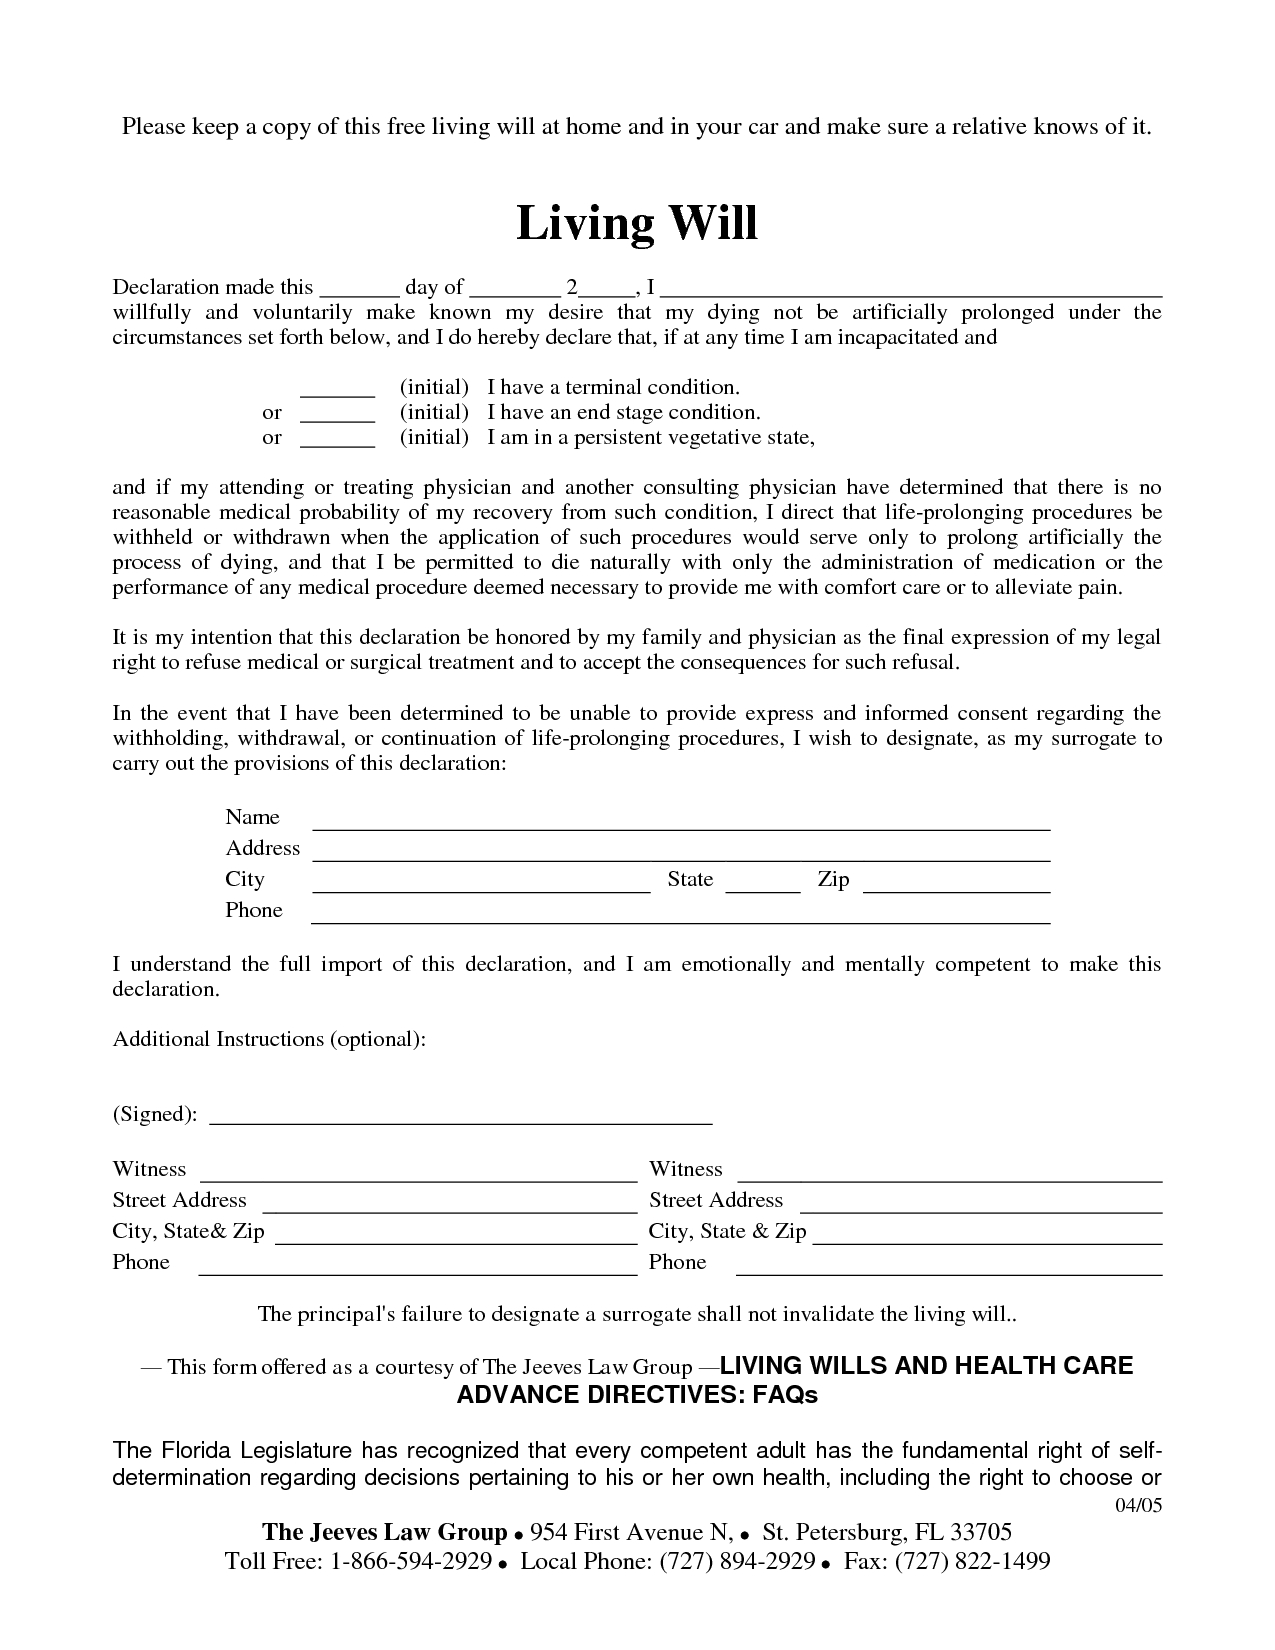 Free Copy Of Living Willrichard_Cataman - Living Will Sample - Living Will Forms Free Printable